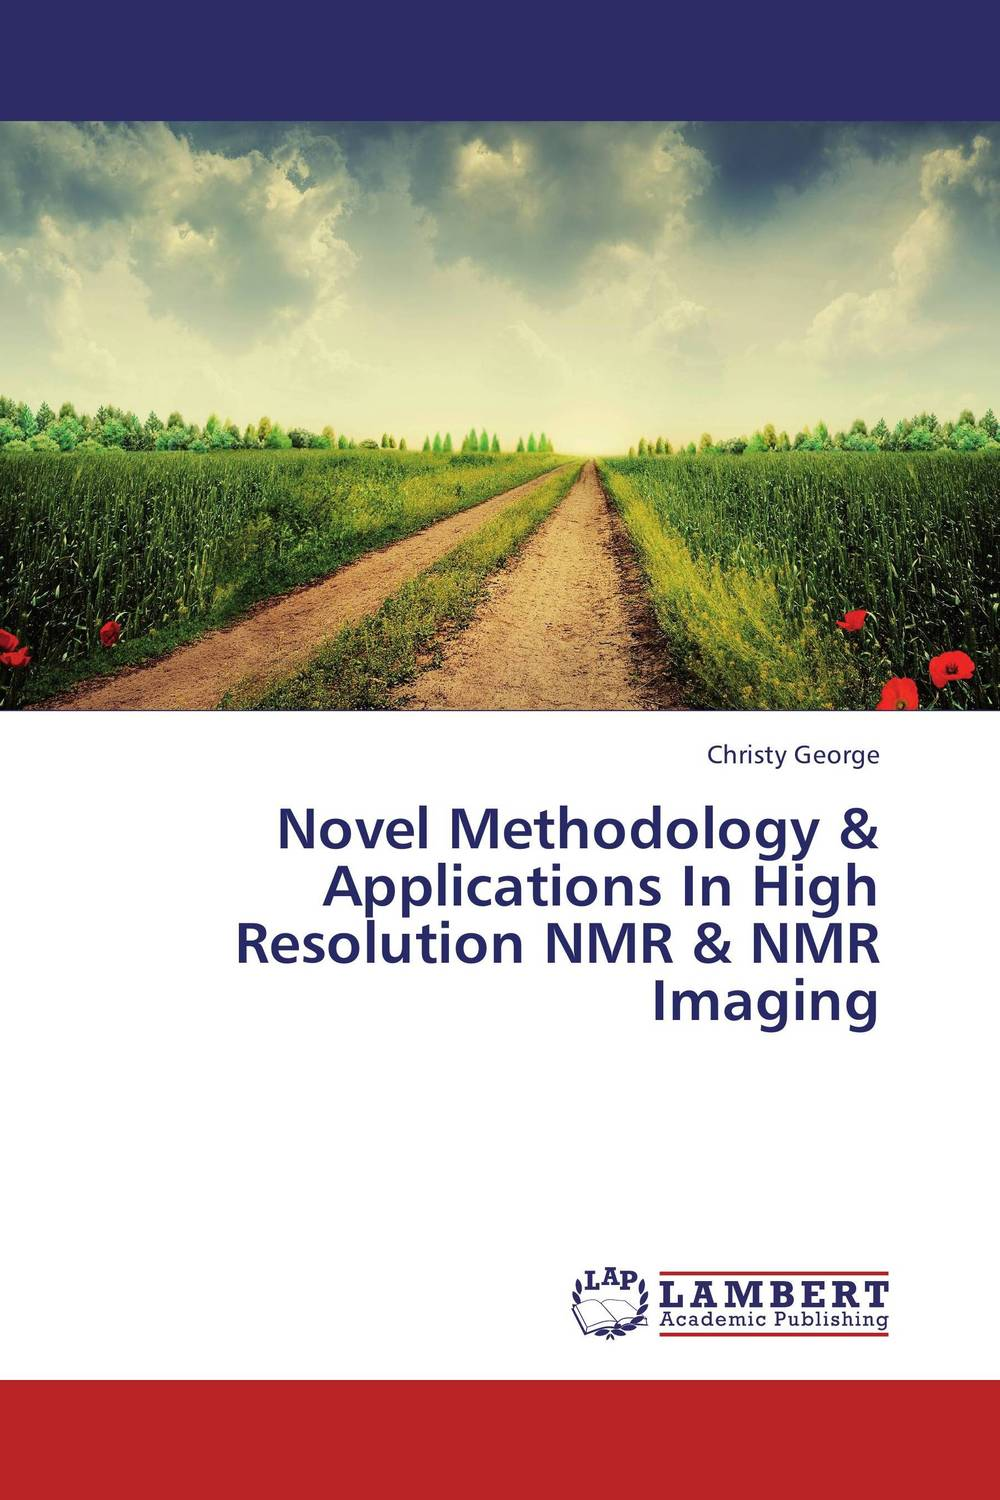 Novel Methodology & Applications In High Resolution NMR & NMR Imaging alon dadon imaging spectroscopy from space applied for geological mapping